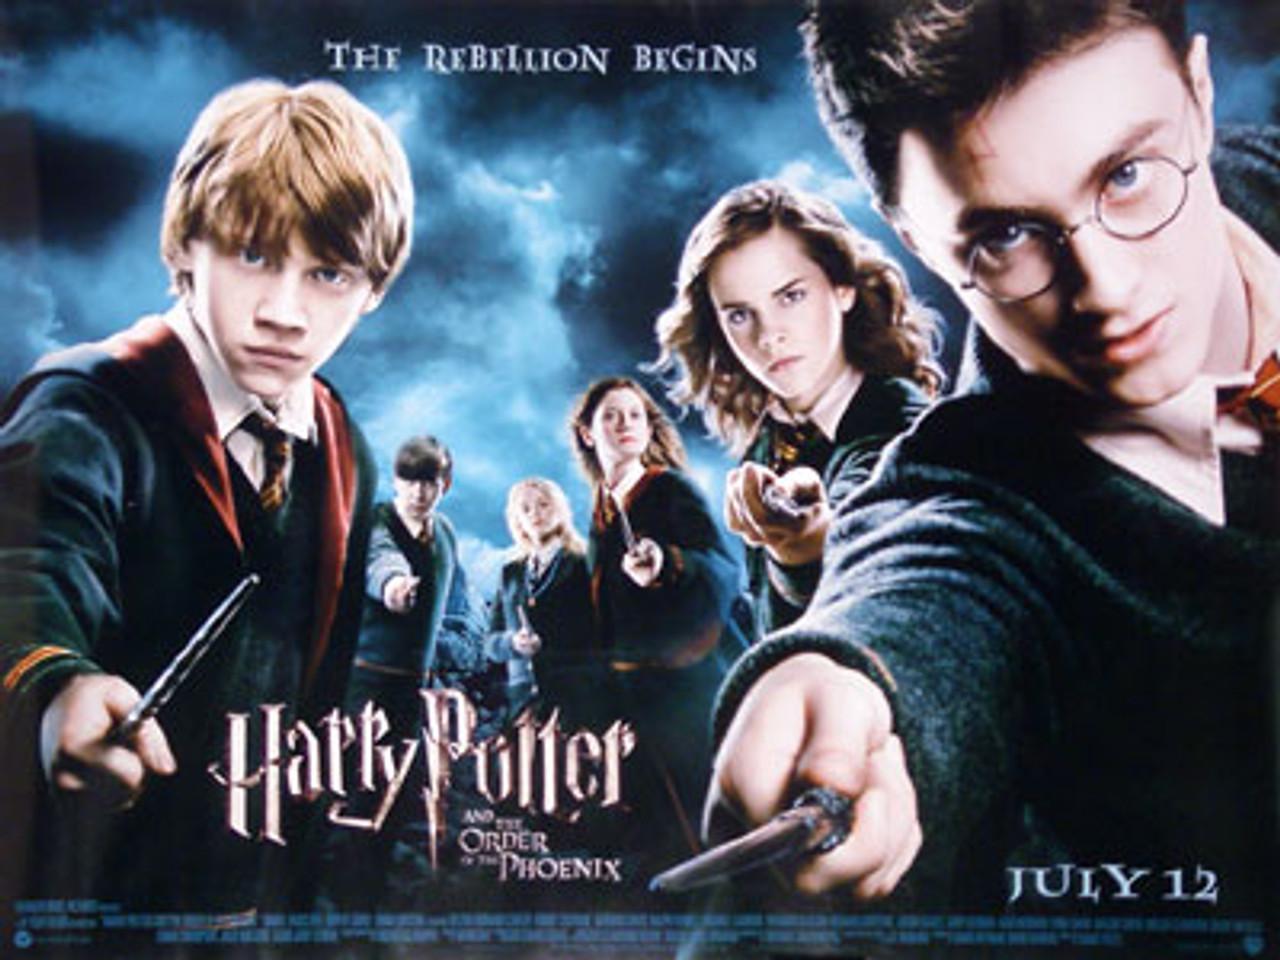 HARRY POTTER AND THE ORDER OF THE PHOENIX MOVIE POSTER REGULAR STYLE